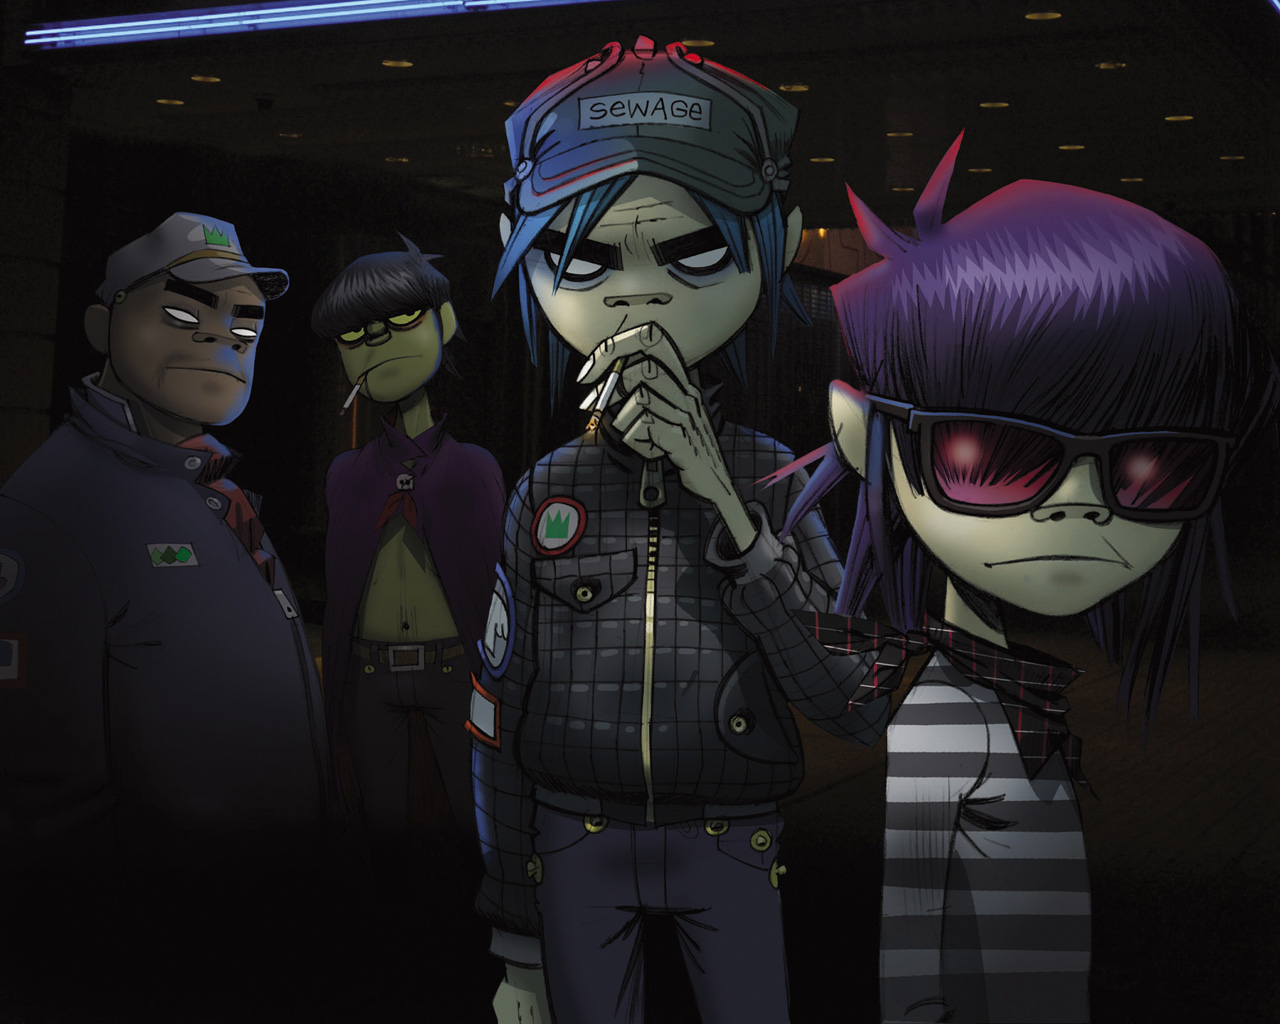 Gorillaz wallpaper 1280x1024 #70125